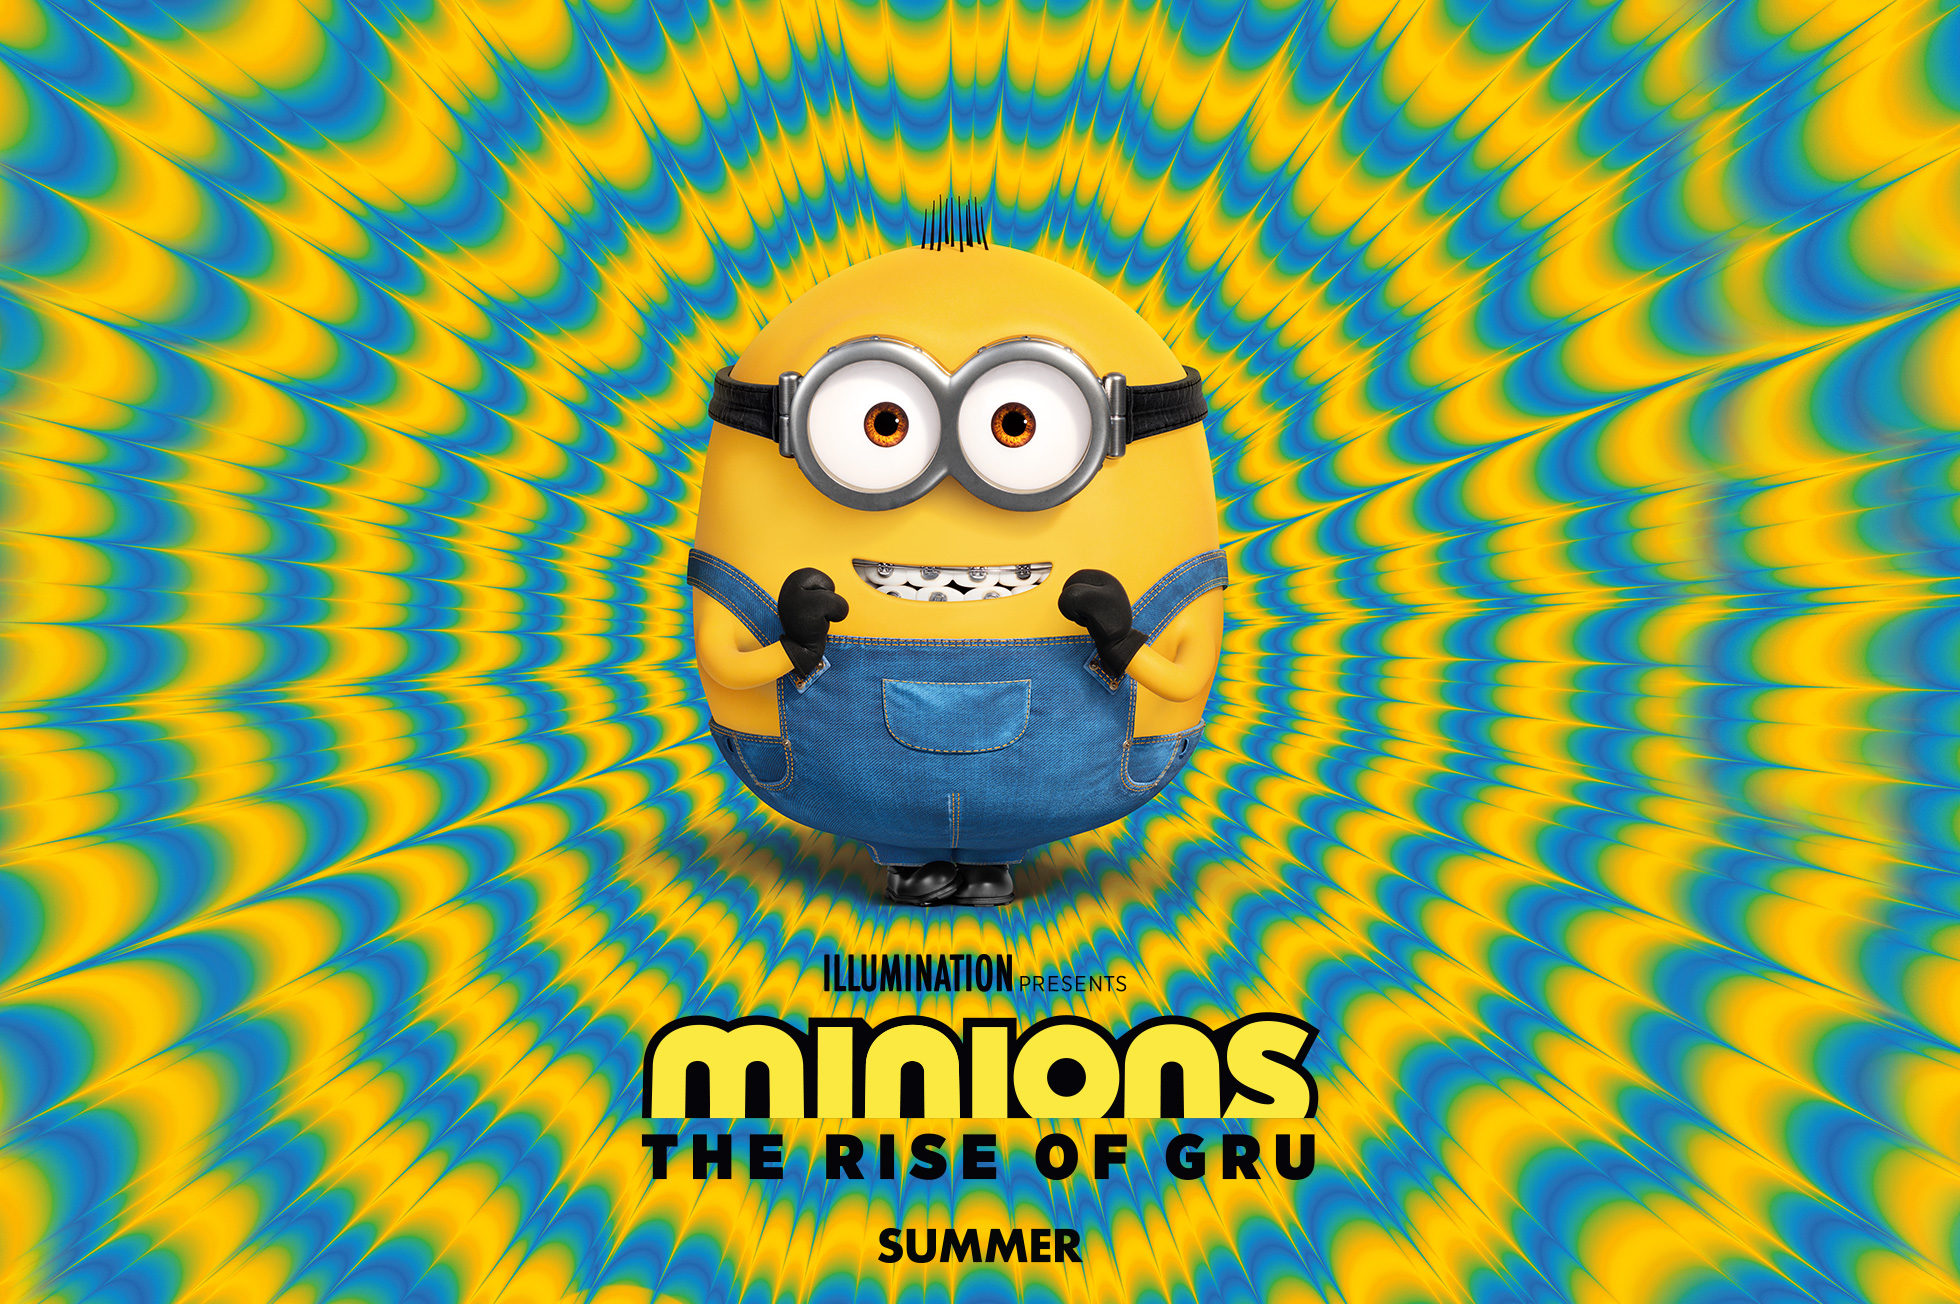 'Minions: The Rise of Gru' - landscape artwork